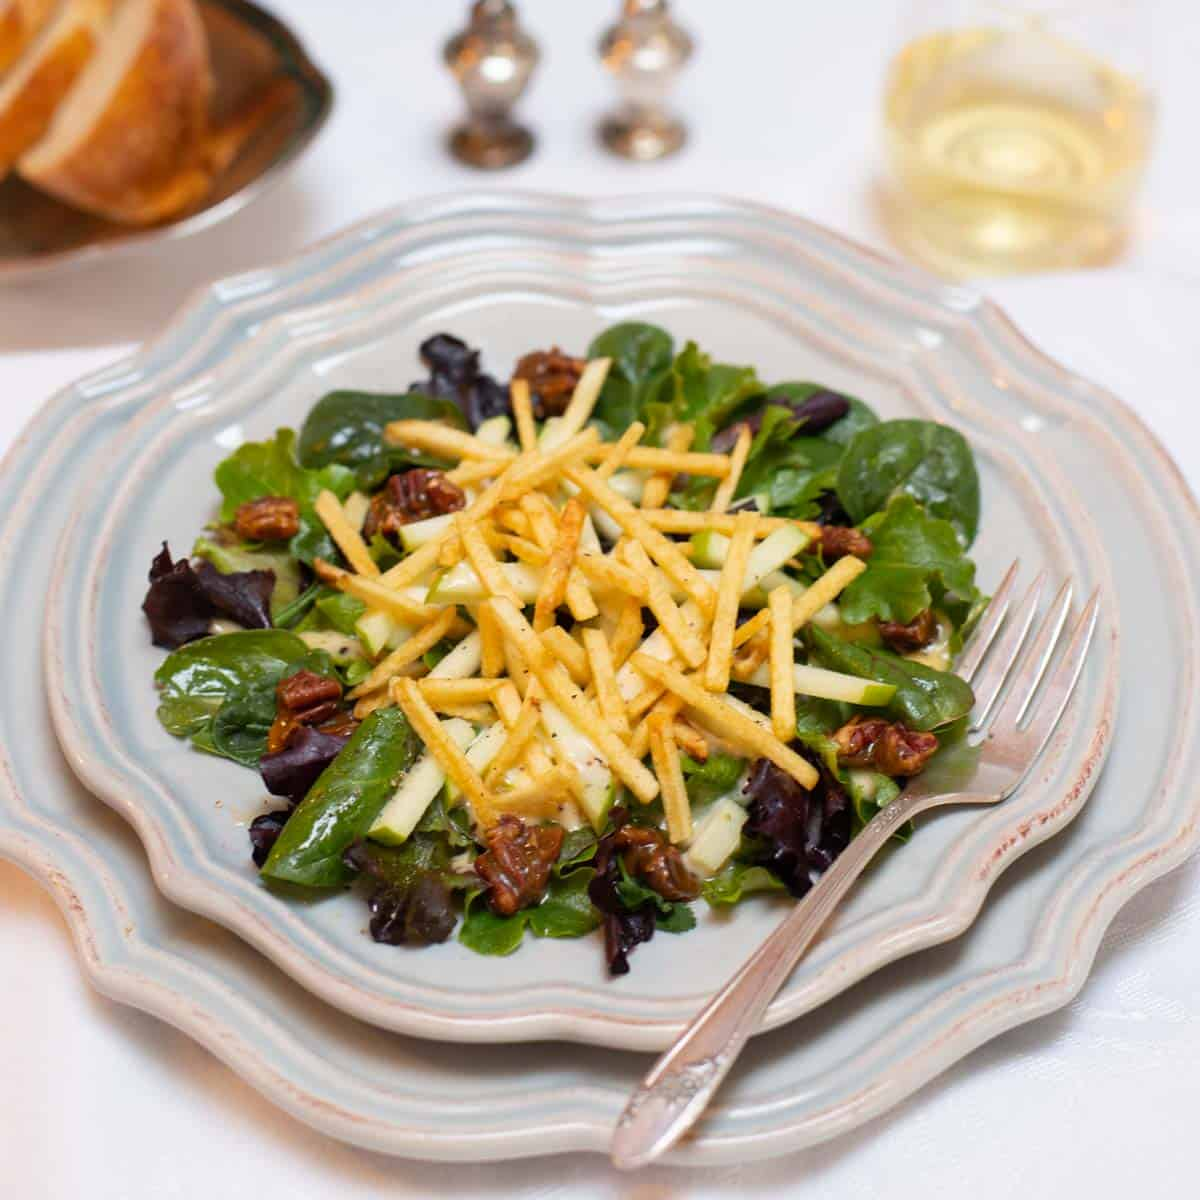 Individual plate filled with a serving of Apple and Mixed Greens Salad with Apple-Truffle Vinaigrette